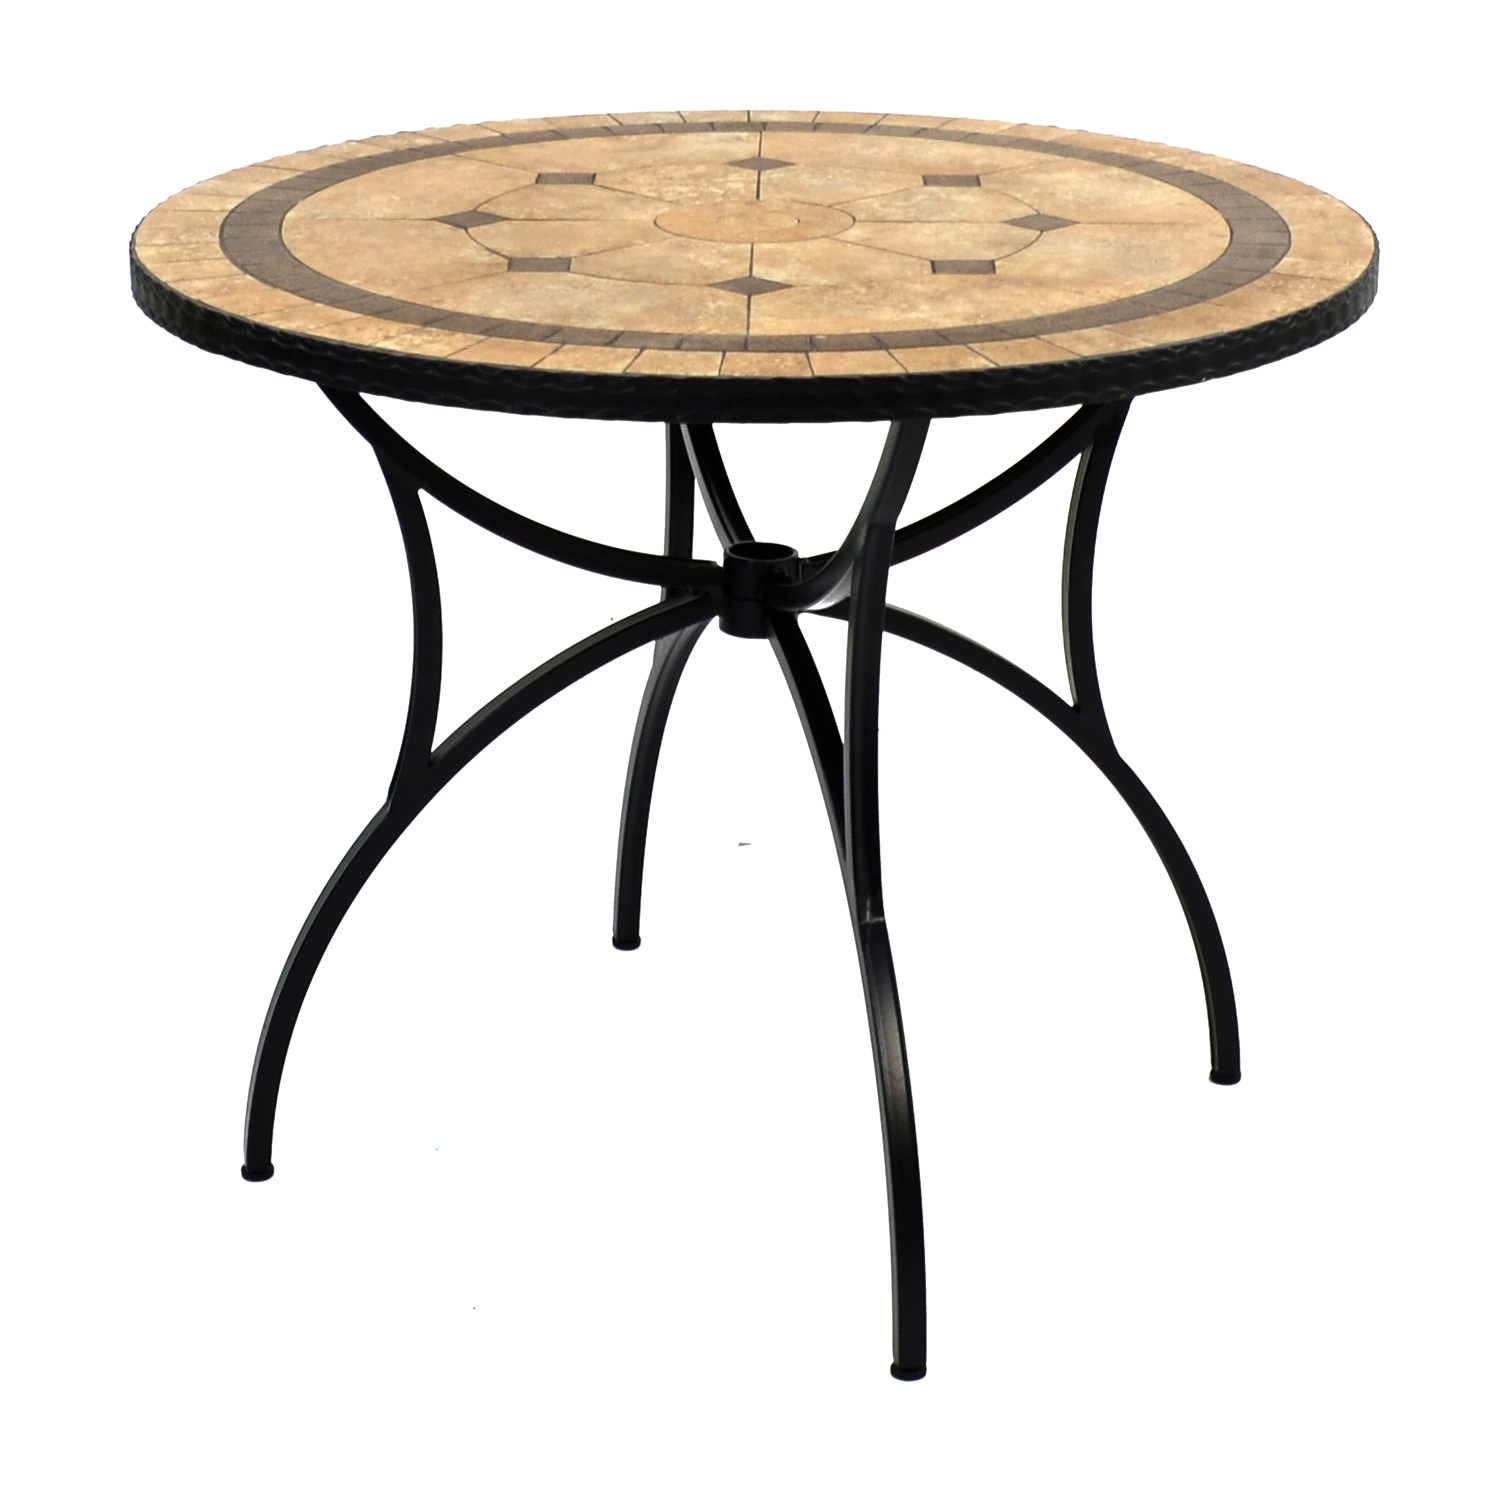 RICHMOND 91CM PATIO TABLE PROFILE